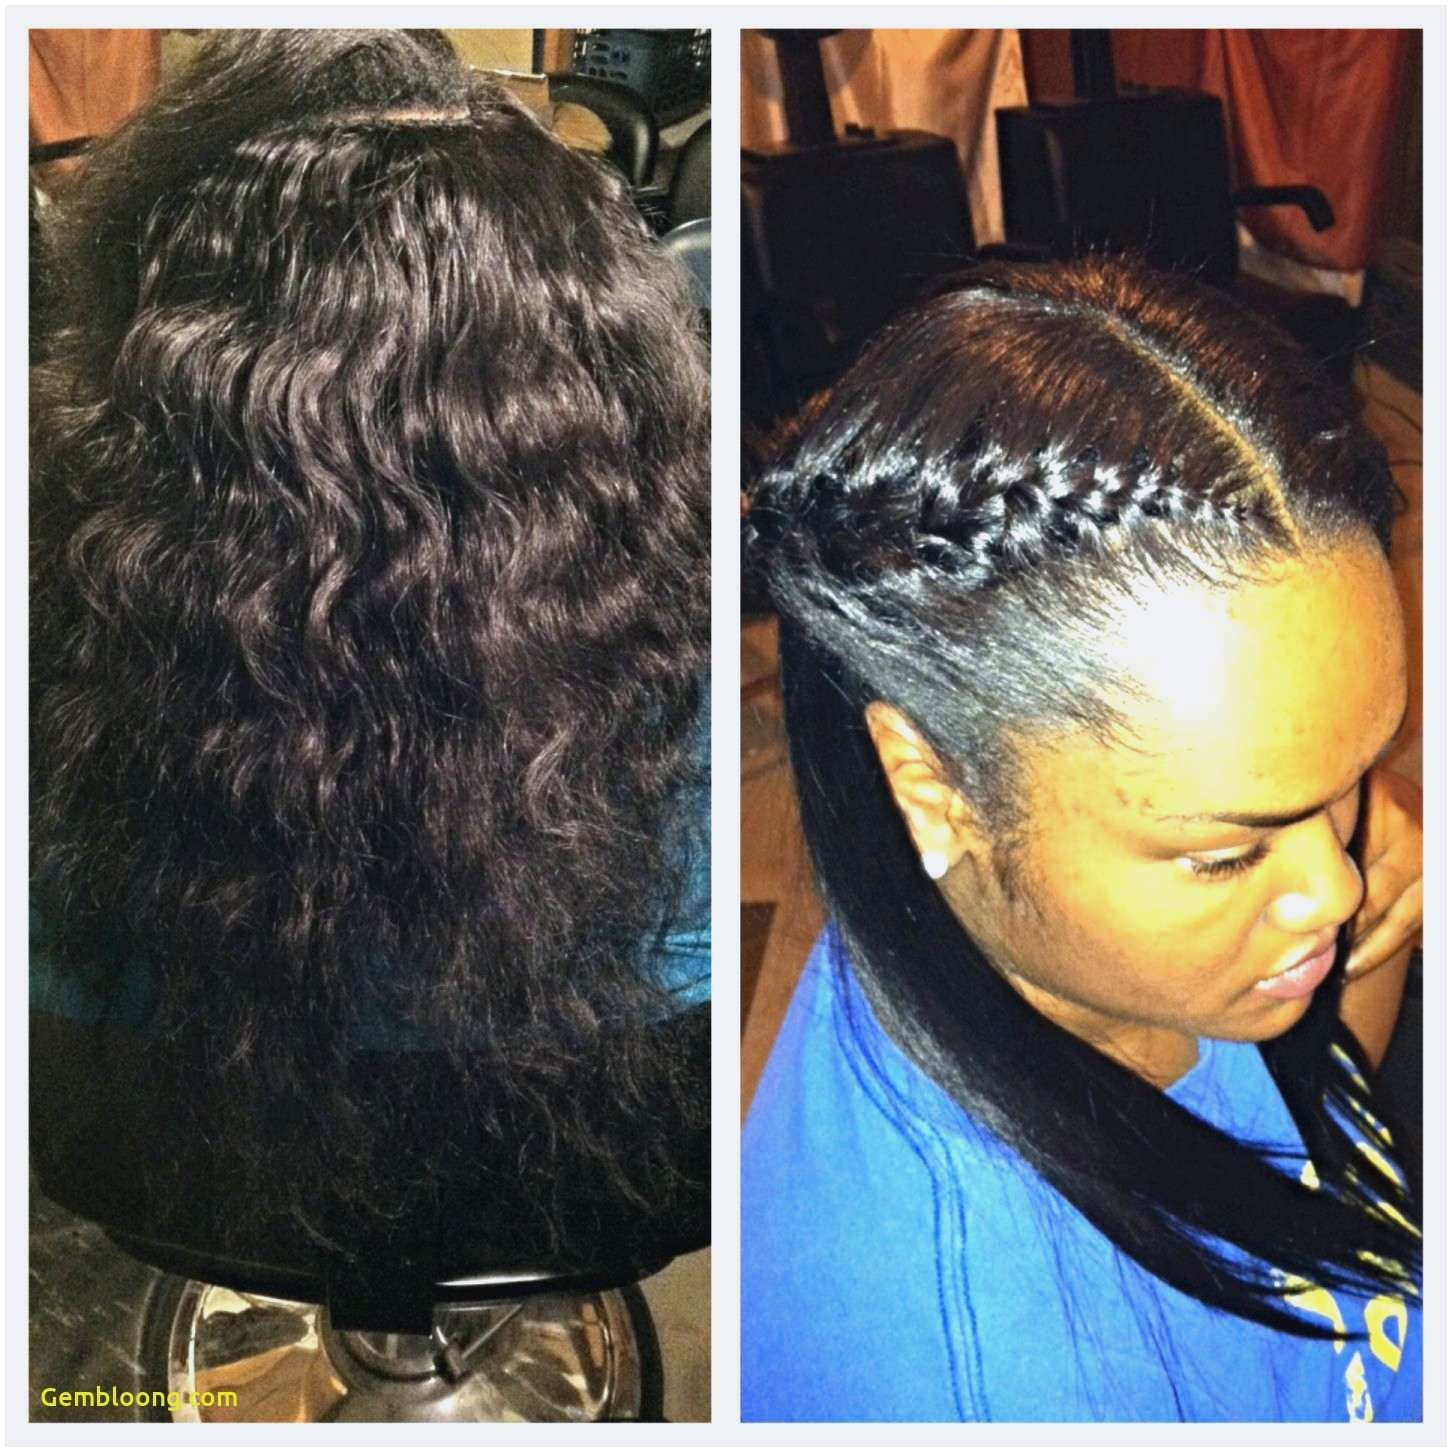 Lovely 99 Up To Date Weave Hairstyles With Color For Choice Short Weave Hairstyles For Round Faces